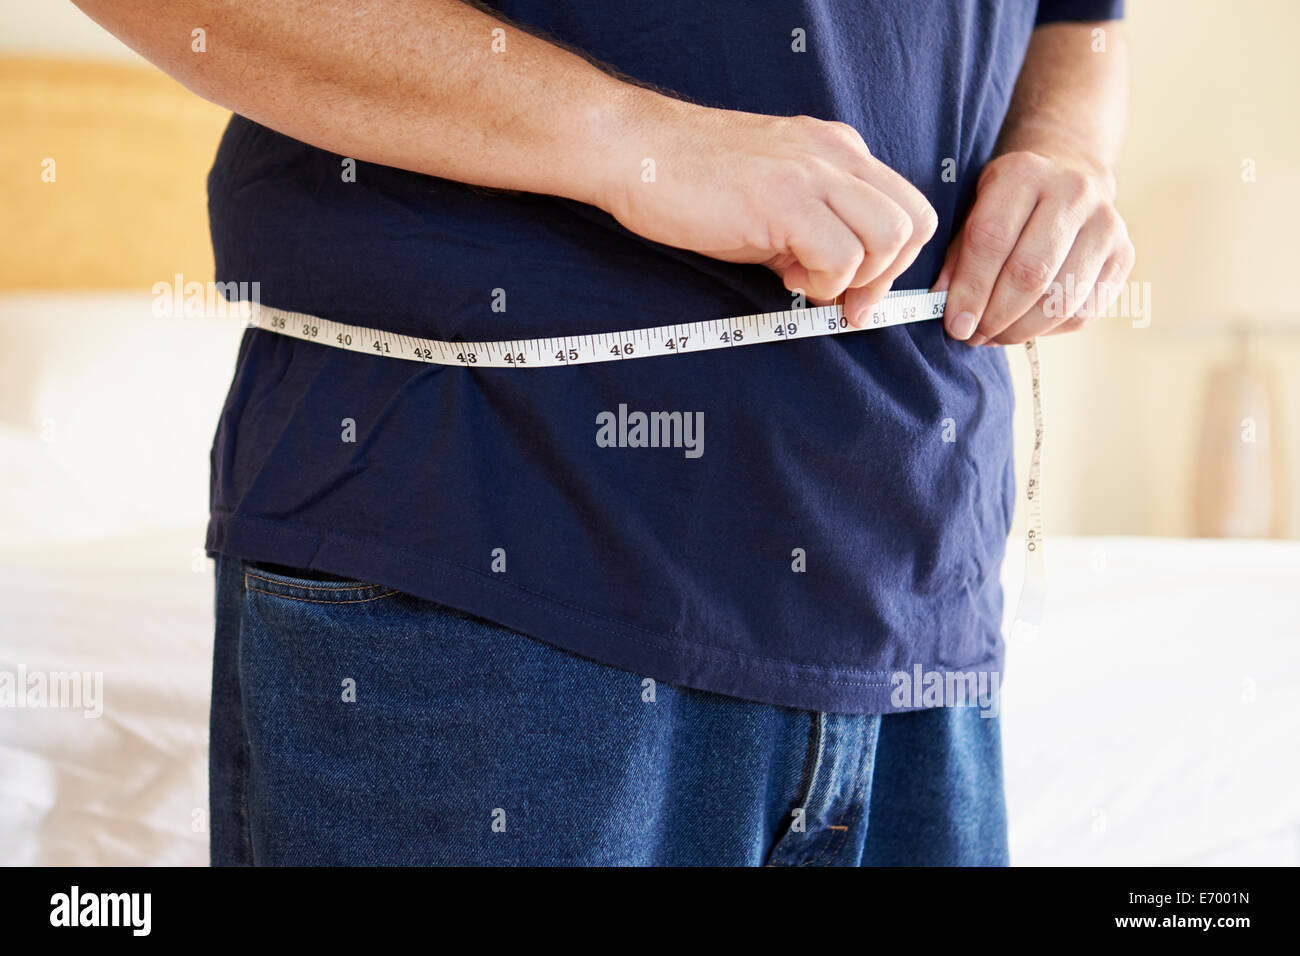 Close Up of Overweight Man Measuring Waist Photo Stock